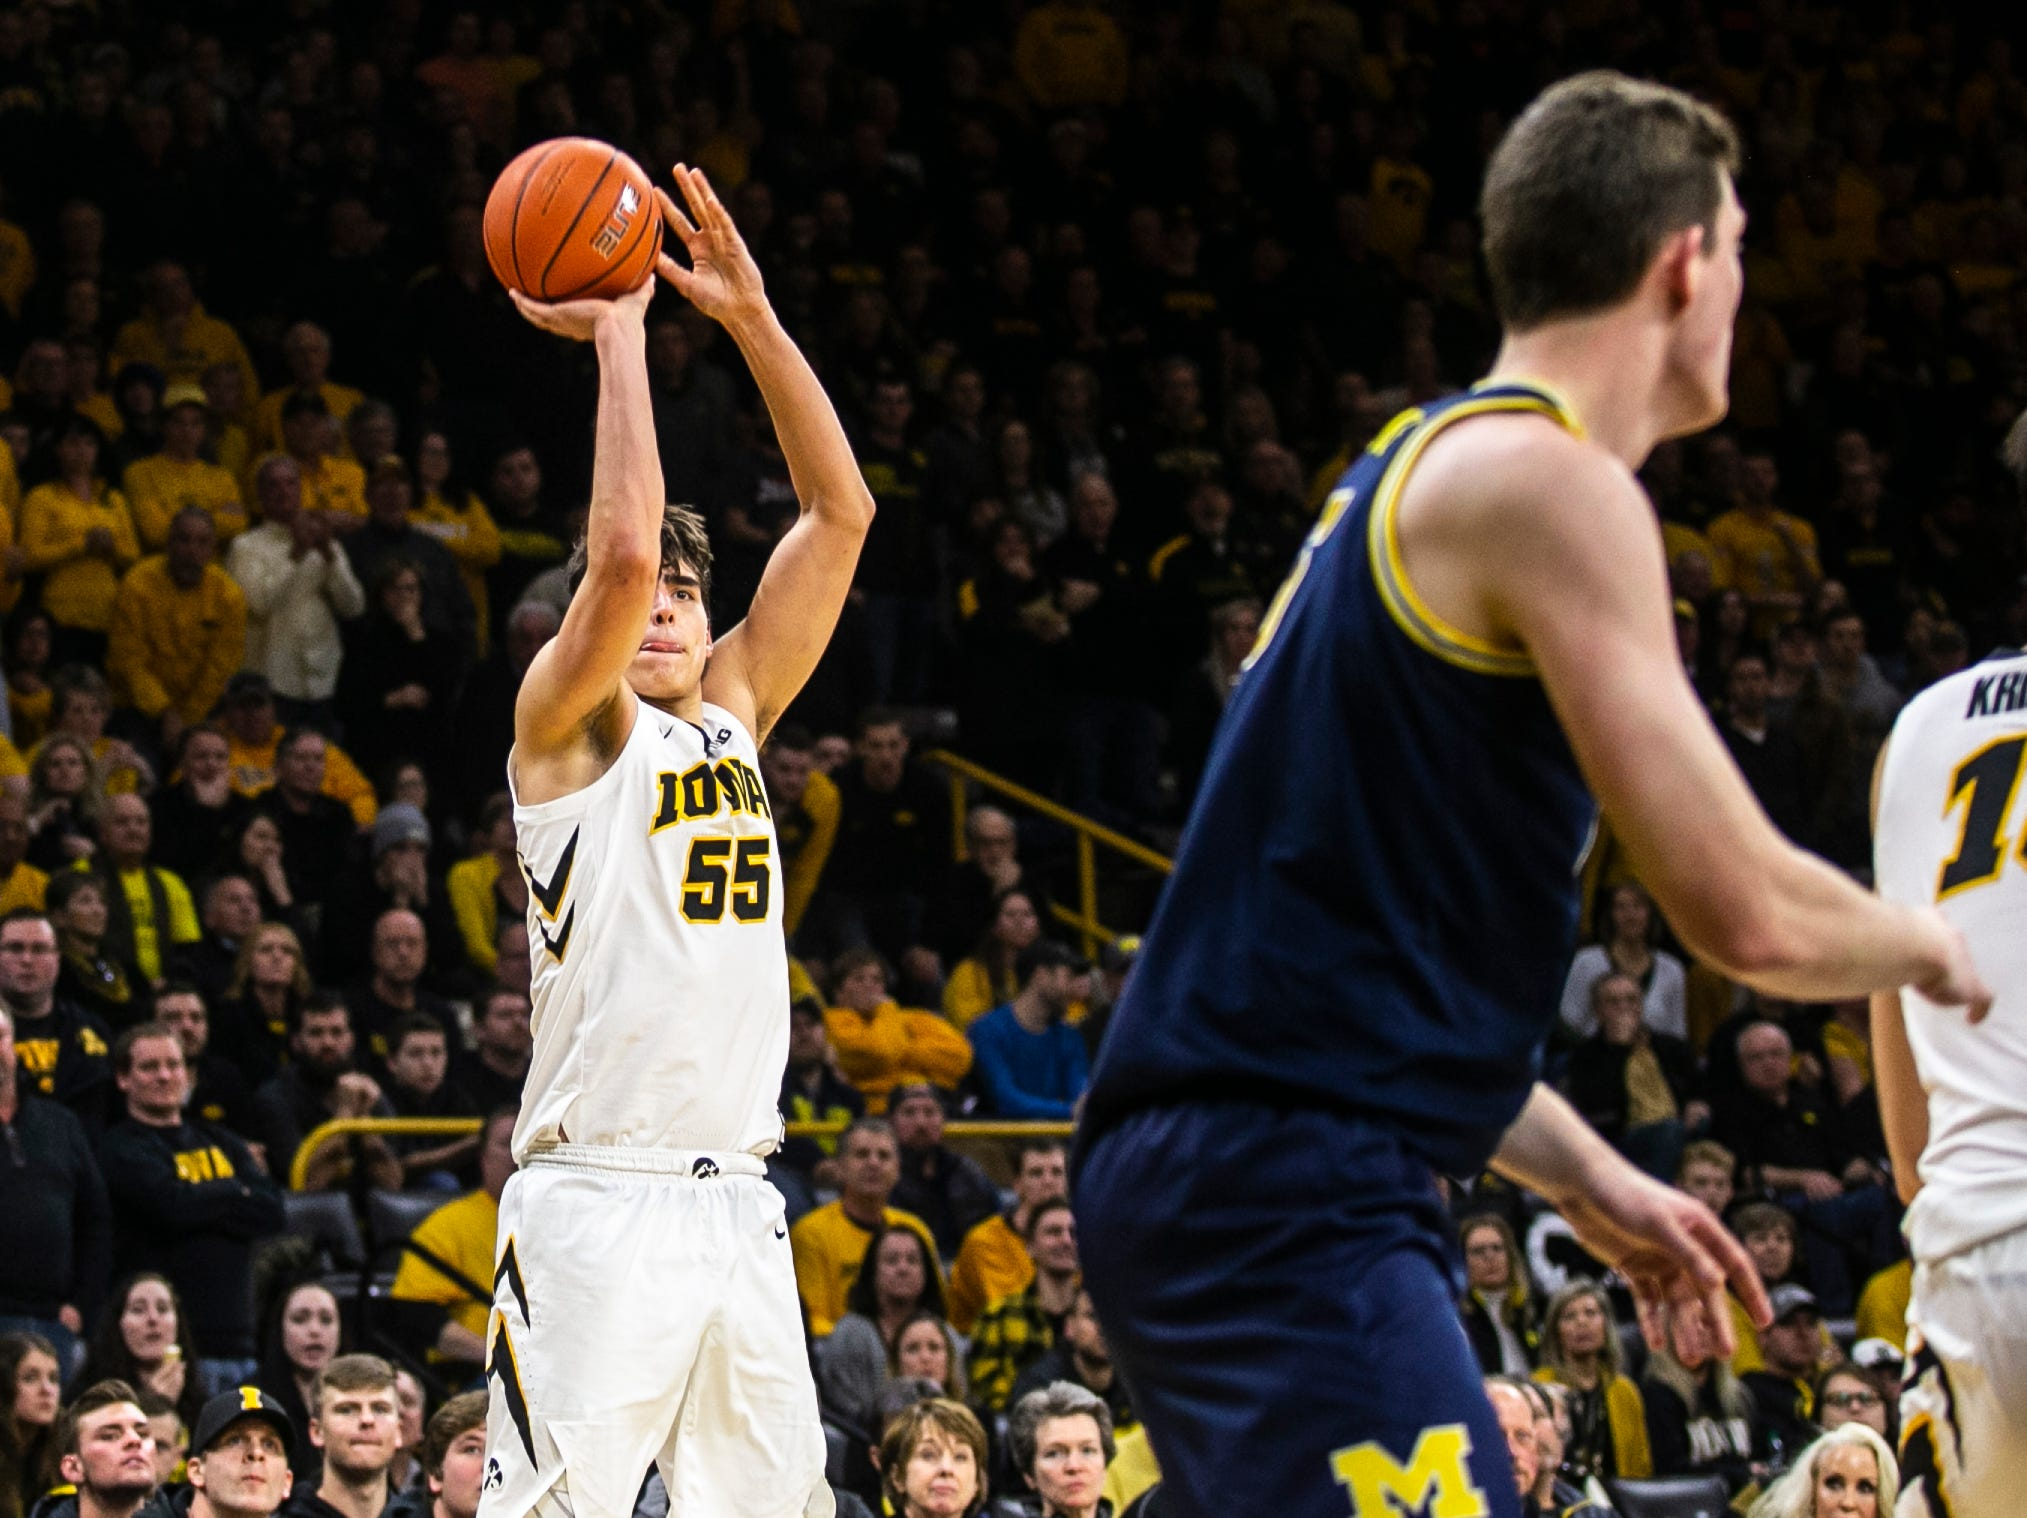 Iowa forward Luka Garza (55) shoots a 3-point basket during a NCAA Big Ten Conference men's basketball game on Friday, Feb. 1, 2019, at Carver-Hawkeye Arena in Iowa City, Iowa.